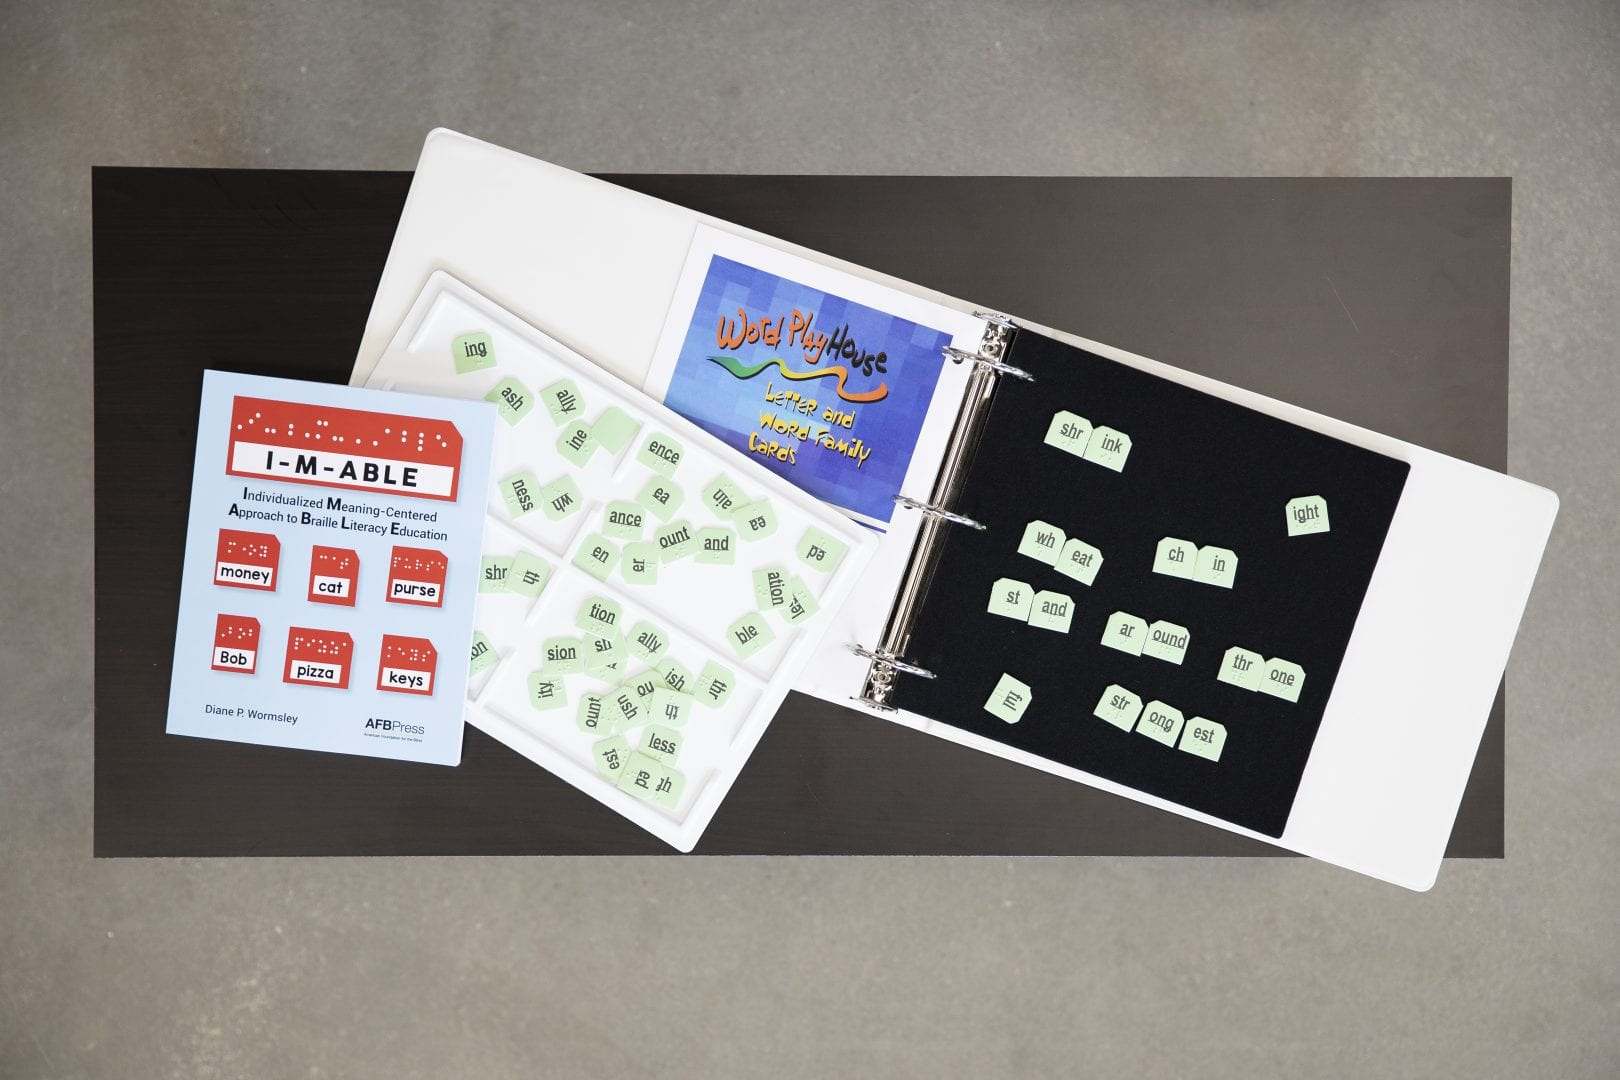 a sample of the contents of the kit including book, tray, binder, felt board, and velcro braille syllables